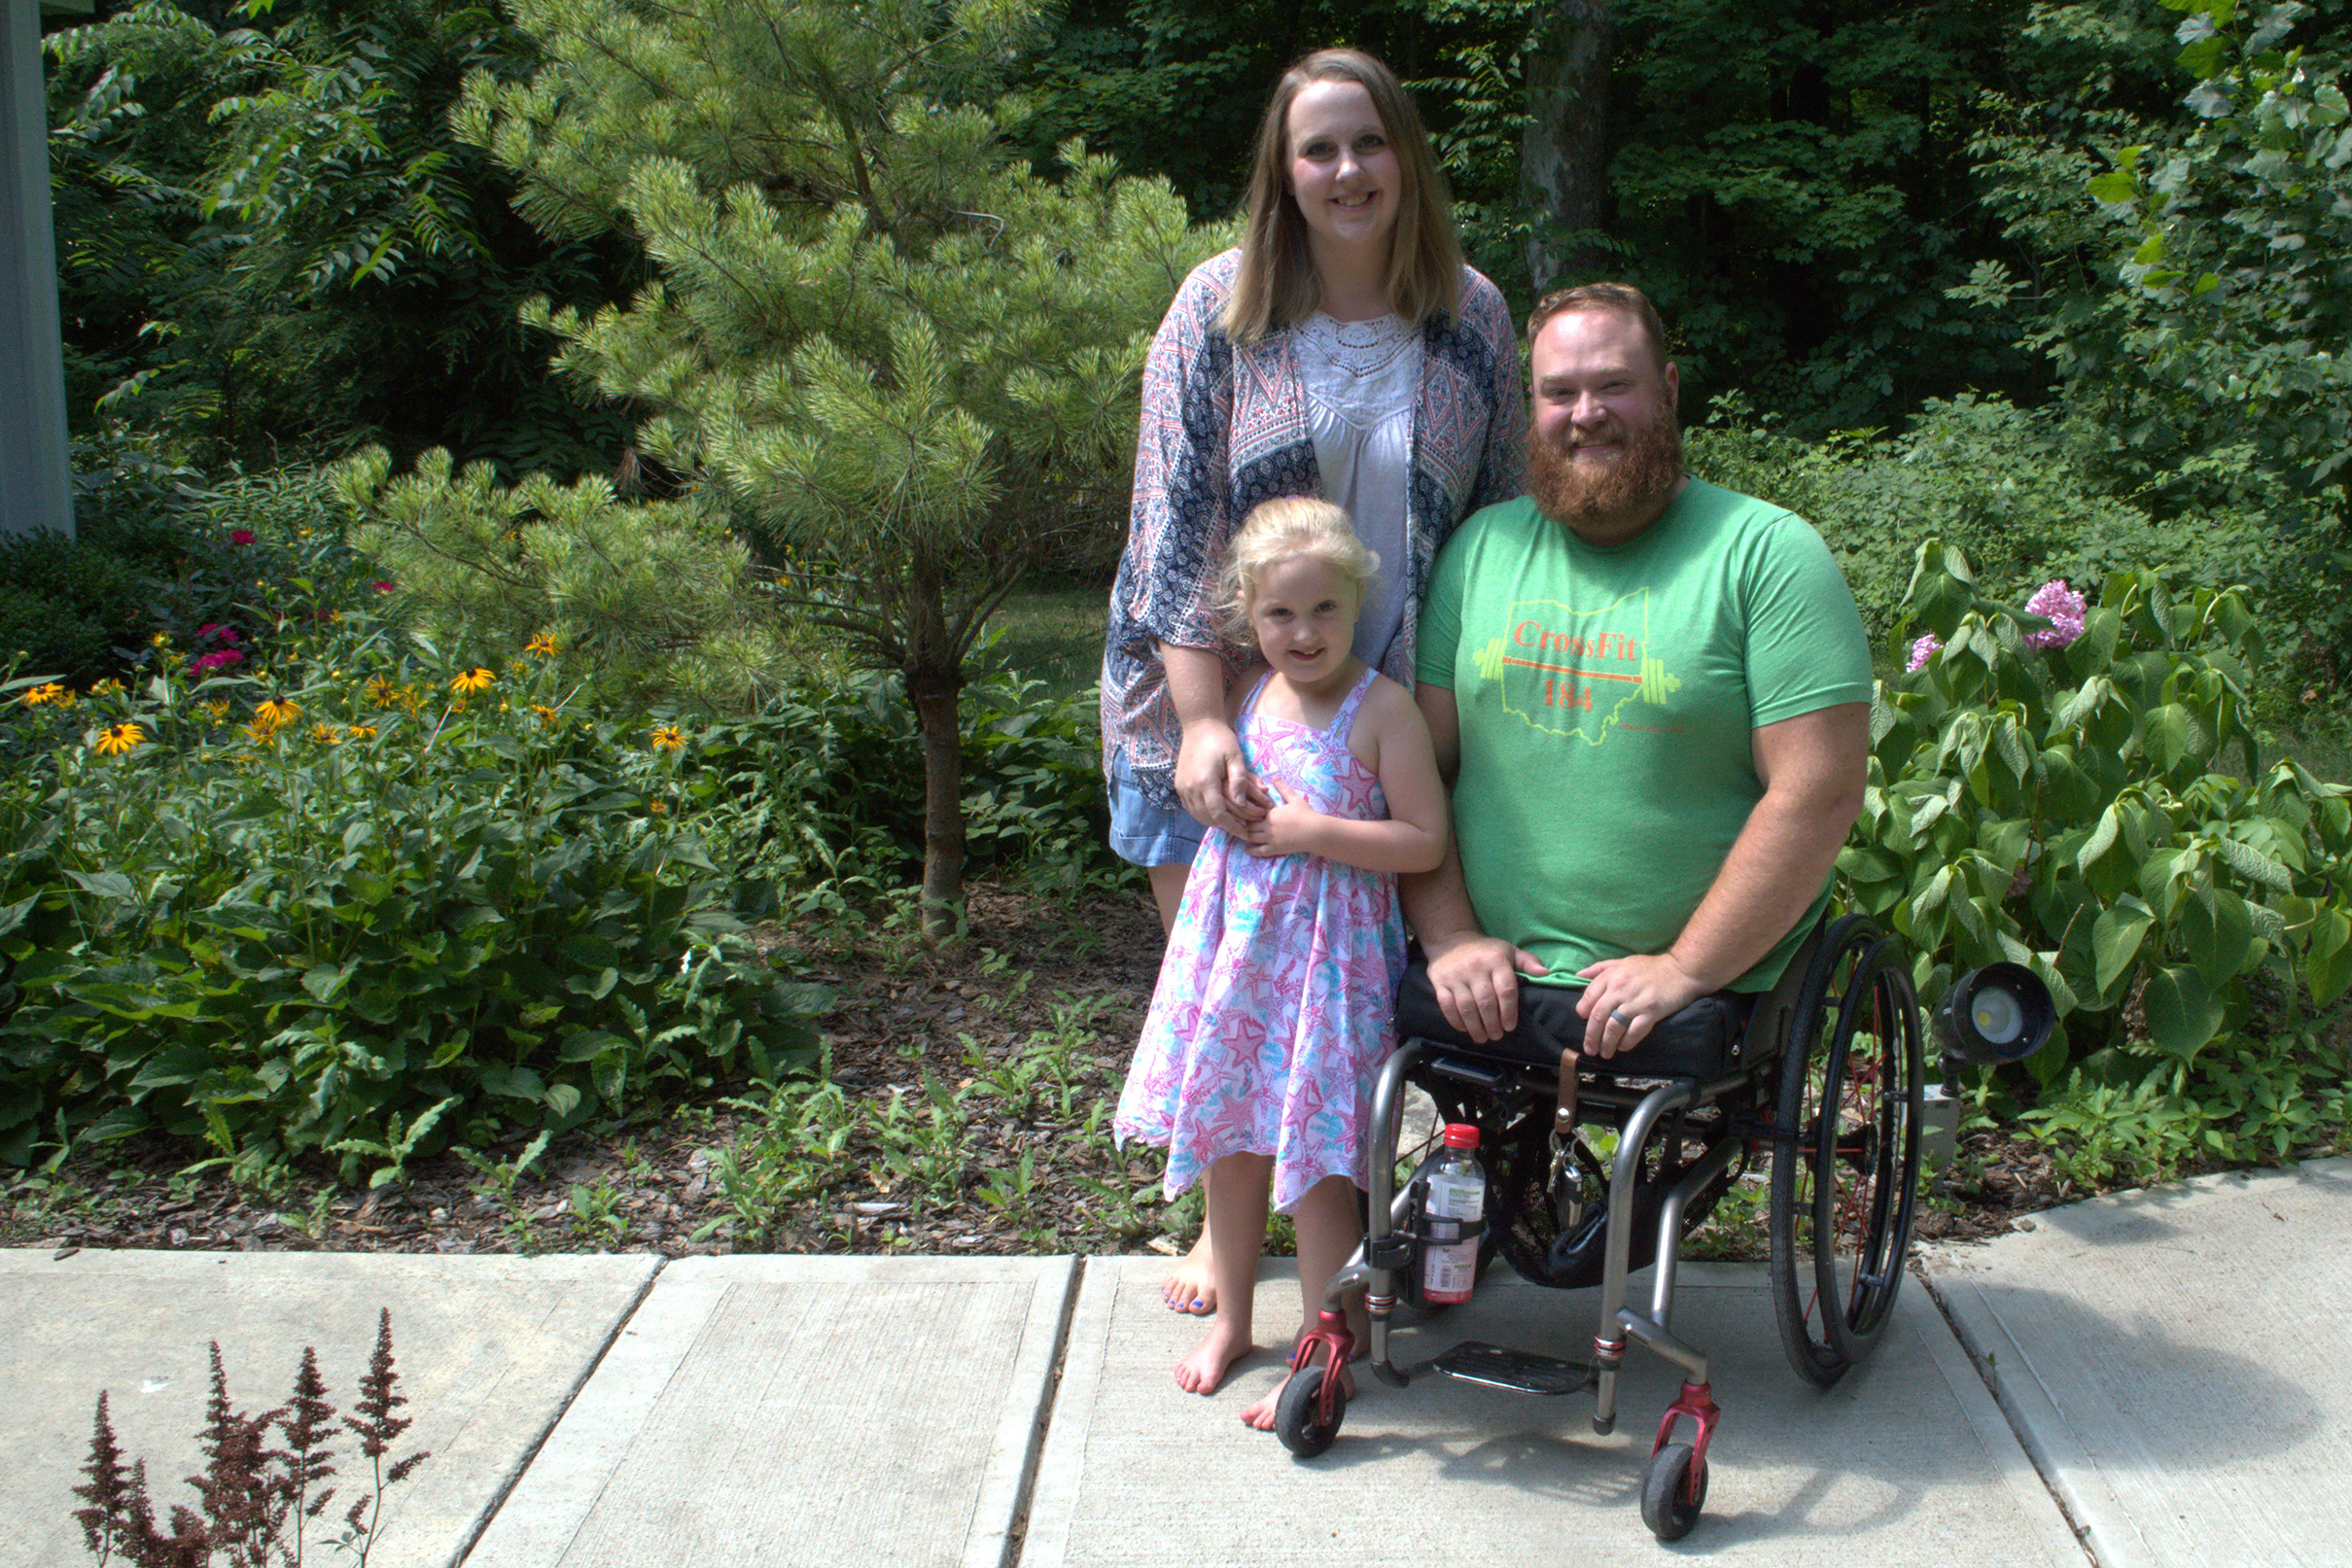 Caption: Army veteran Jason Gibson and his wife Kara paid out of pocket for IVF treatments that resulted in the birth of their daughter Quinn. Gibson lost both legs in an IED explosion in Afghanistan., Credit: Paige Pfleger / American Homefront